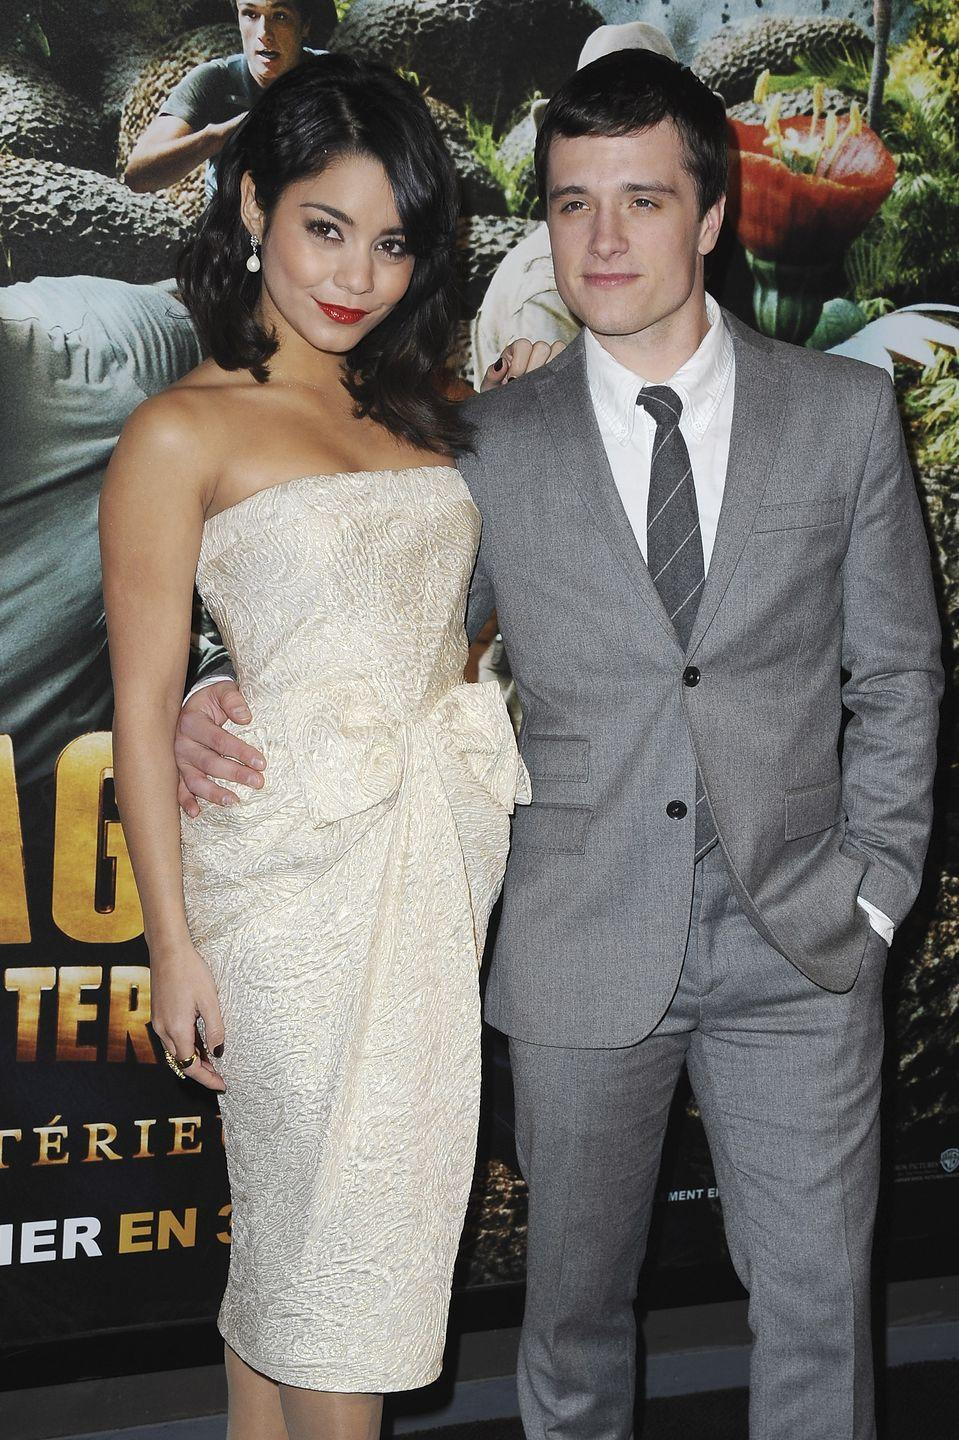 """<p>Vanessa Hudgens cozied up with Josh Hutcherson after filming <em>Journey 2: The Mysterious Island</em> but the short-lived romance quickly fizzled and the couple split in 2012. During a press tour for <em>Journey 2,</em> the pair <a href=""""https://www.youtube.com/watch?v=I_zc4a0kGkA"""" rel=""""nofollow noopener"""" target=""""_blank"""" data-ylk=""""slk:sat down with Today"""" class=""""link rapid-noclick-resp"""">sat down with <em>Today</em></a> and admitted that they did, in fact, date and remained """"really good friends.""""</p>"""